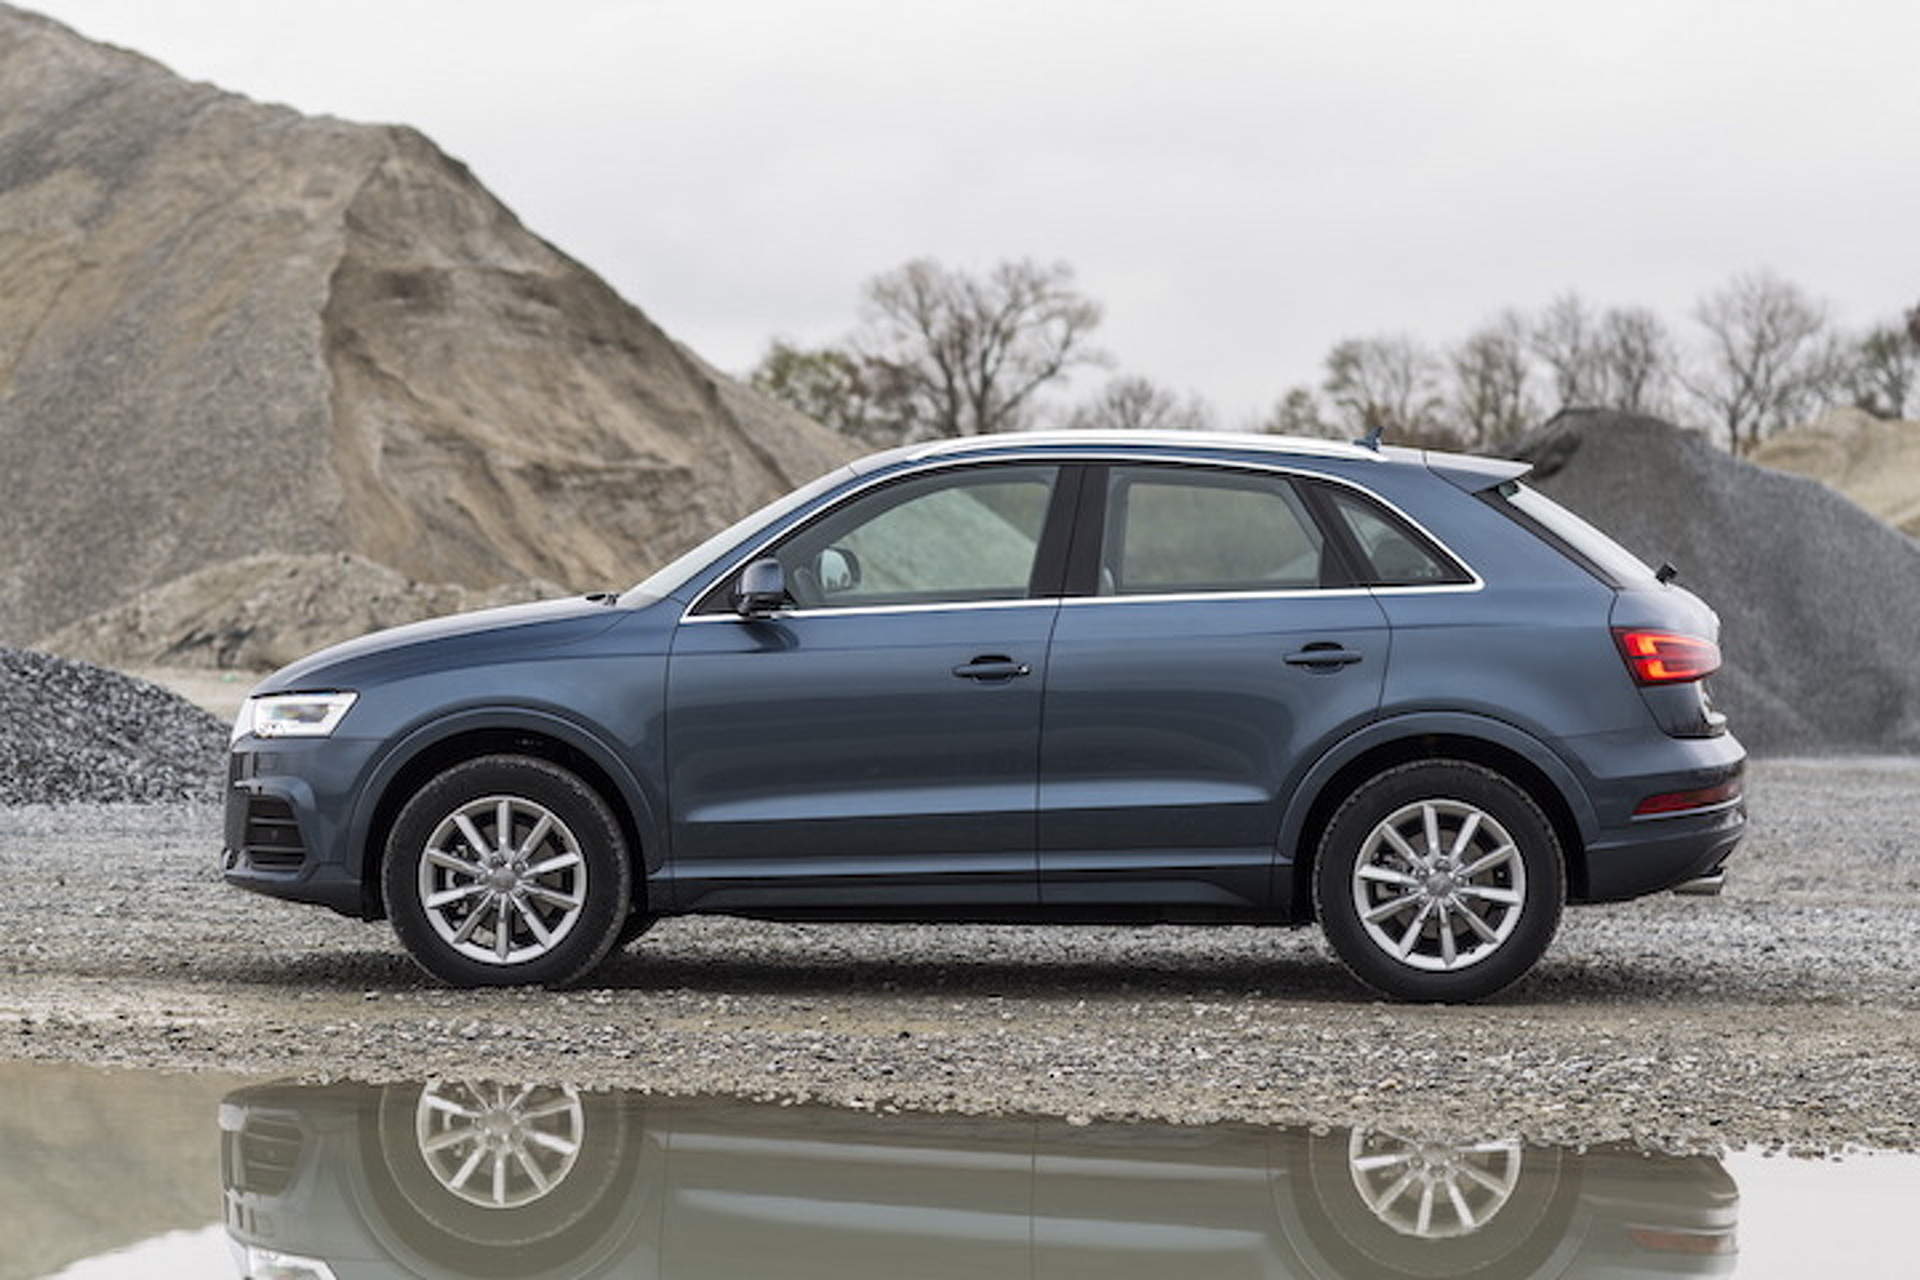 2.1 Million Audi Cars Found With Defeat Devices; Lawsuits Commence